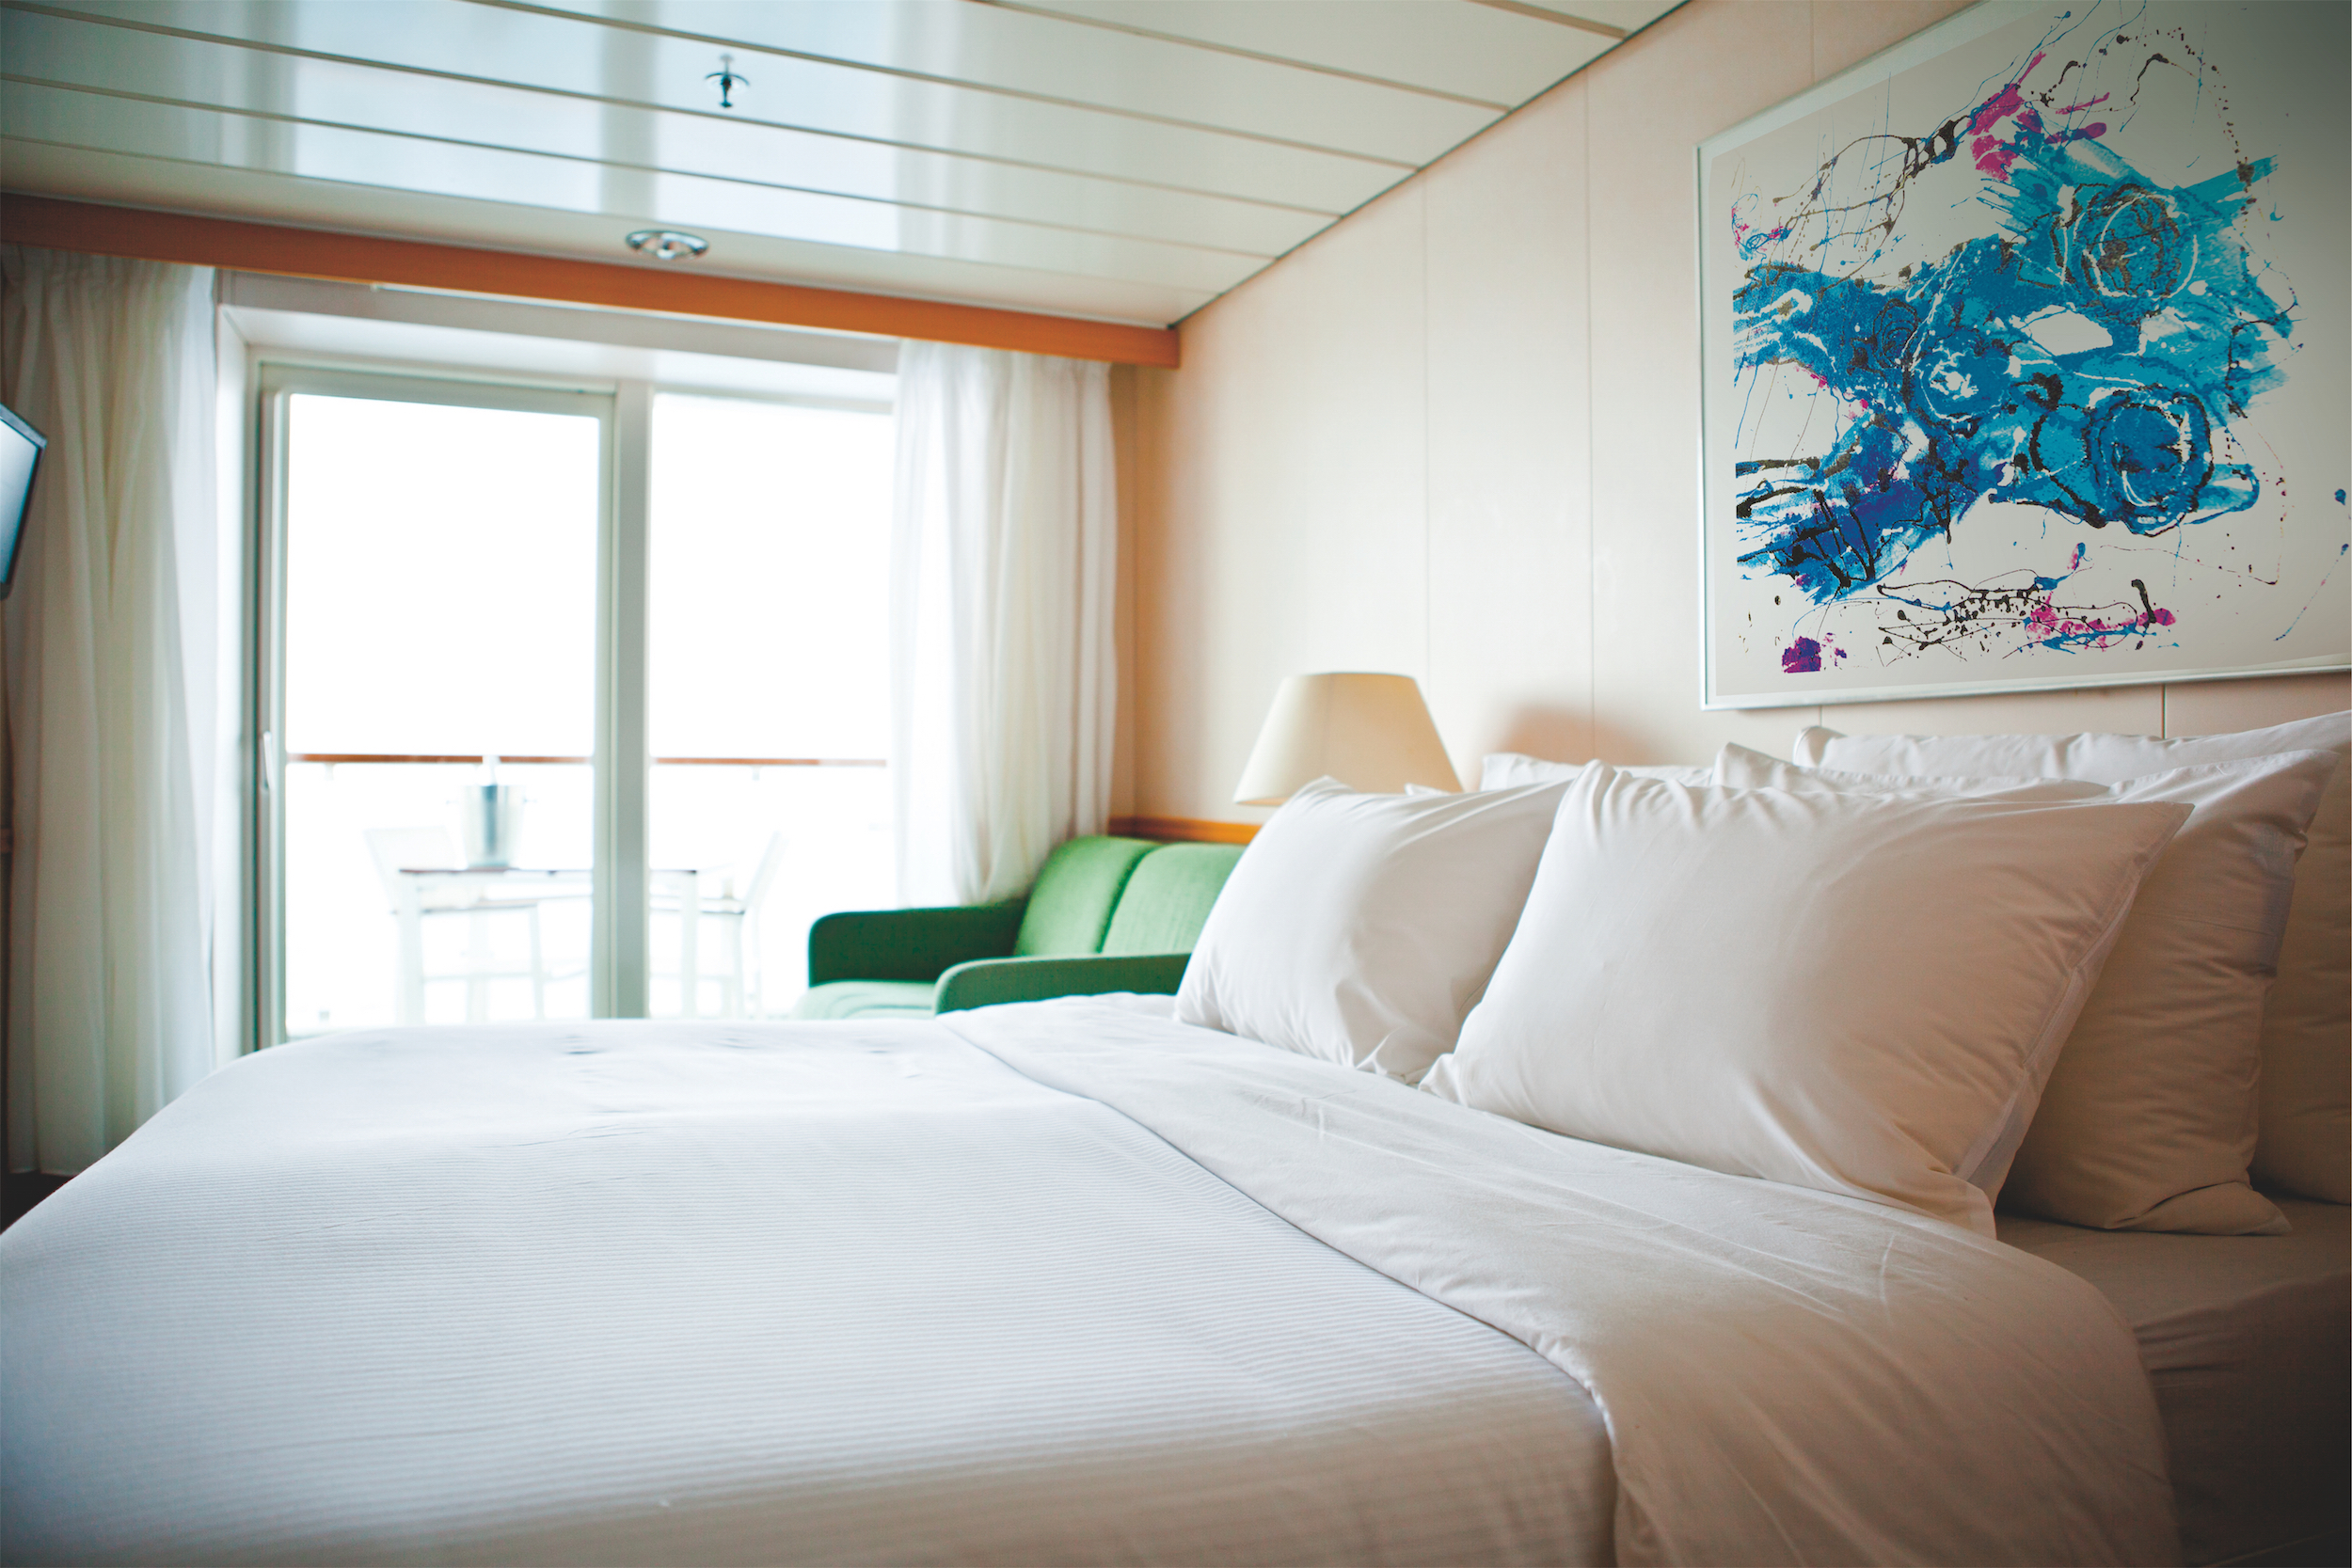 Pullmantur Zenith Accommodation Suite with Balcony 1.jpg